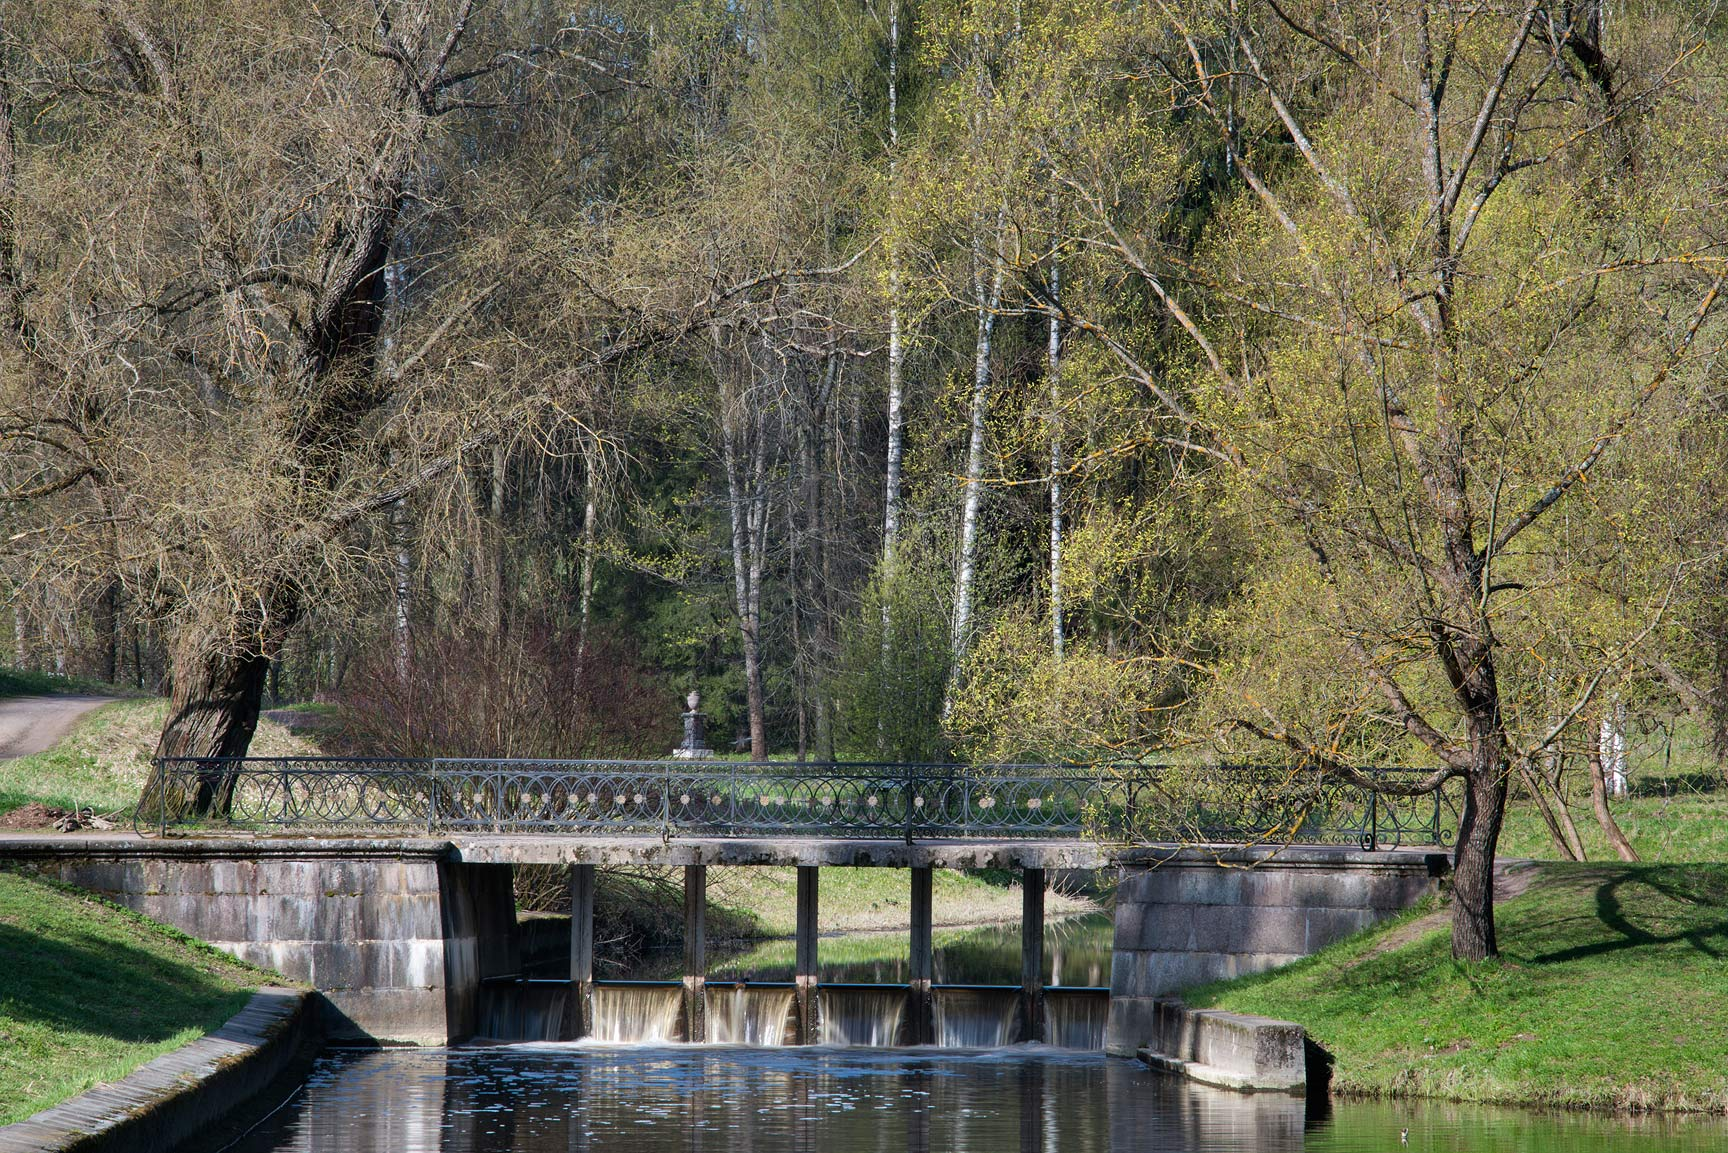 Black Bridge with a dam in Pavlovsk Park. Pavlovsk, suburb of St.Petersburg, Russia